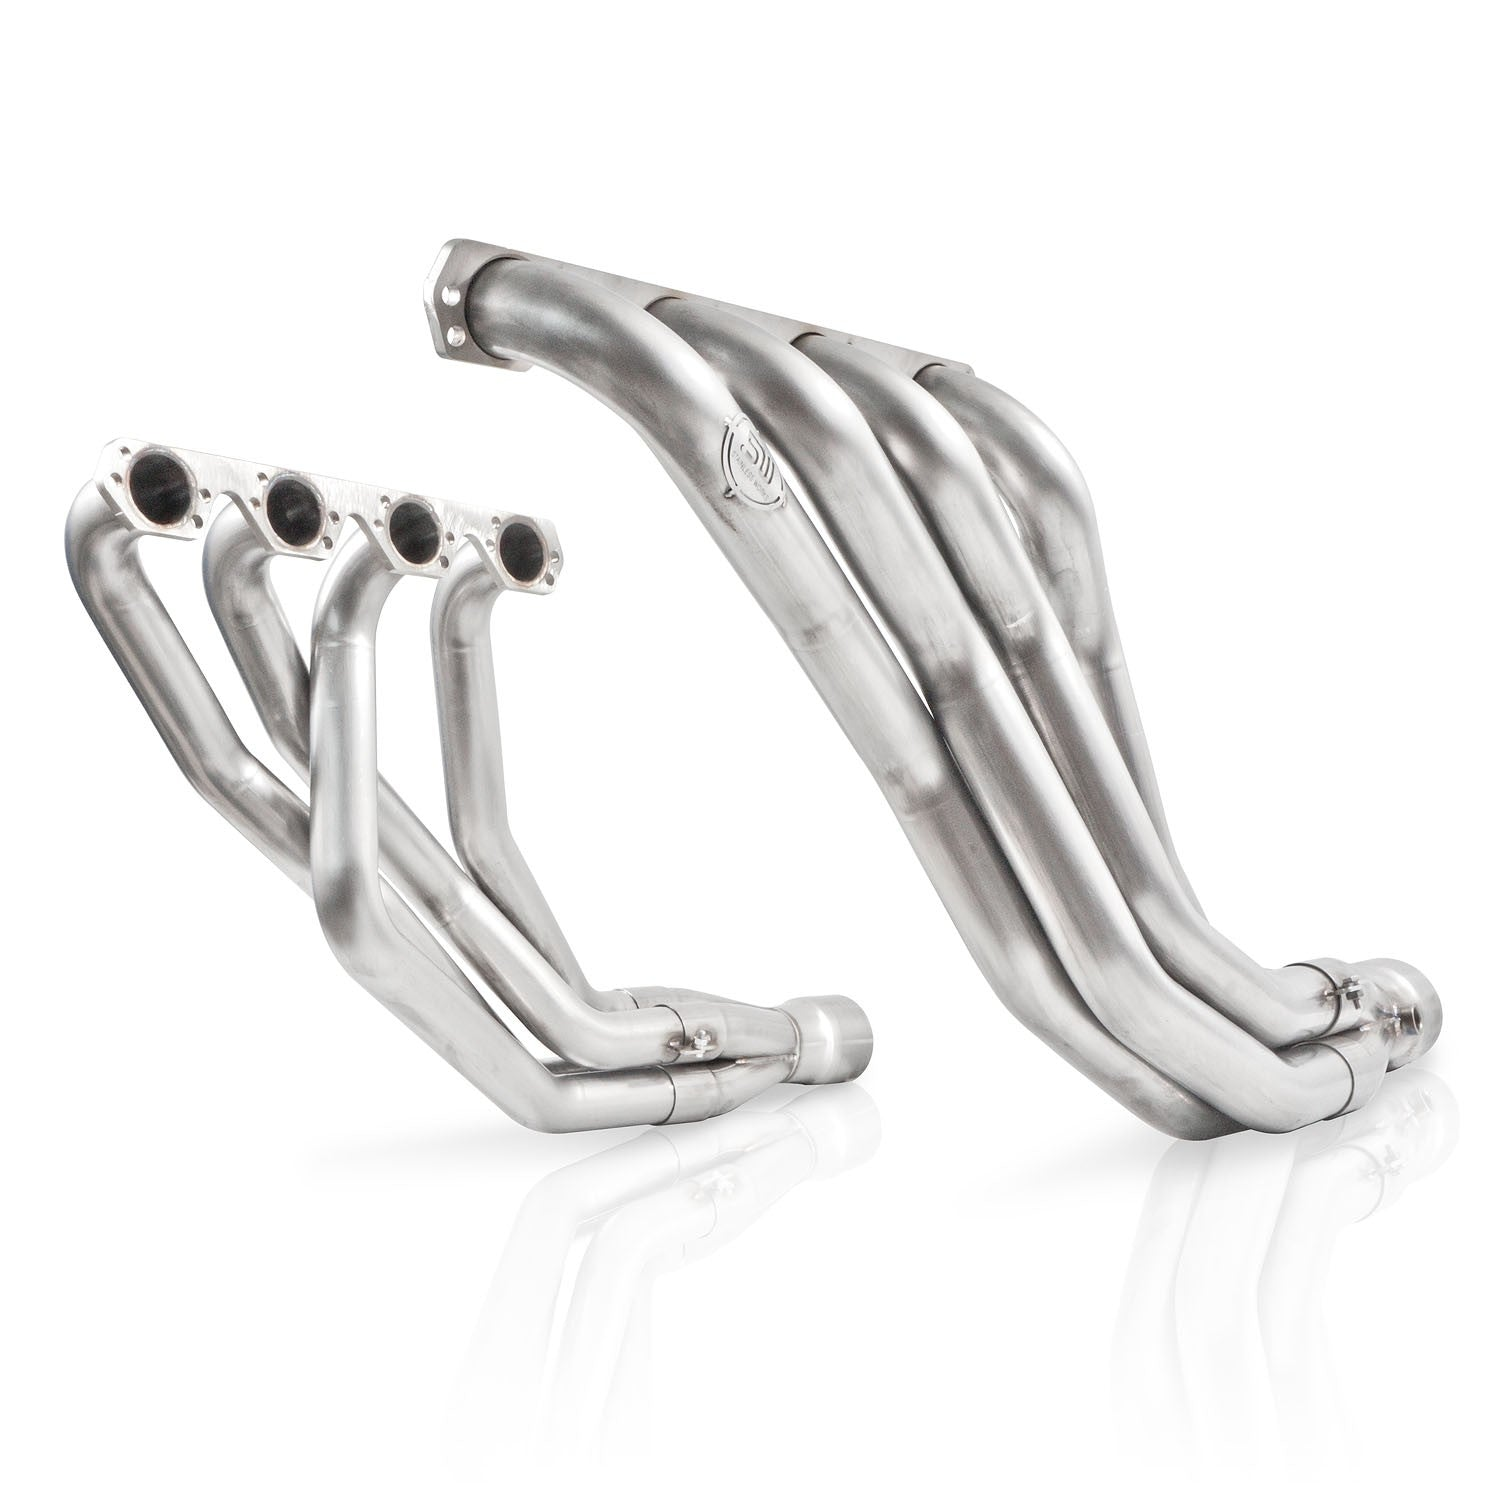 Stainless Works Ford Mustang Foxbody 1979-93 Headers FOXTWR188